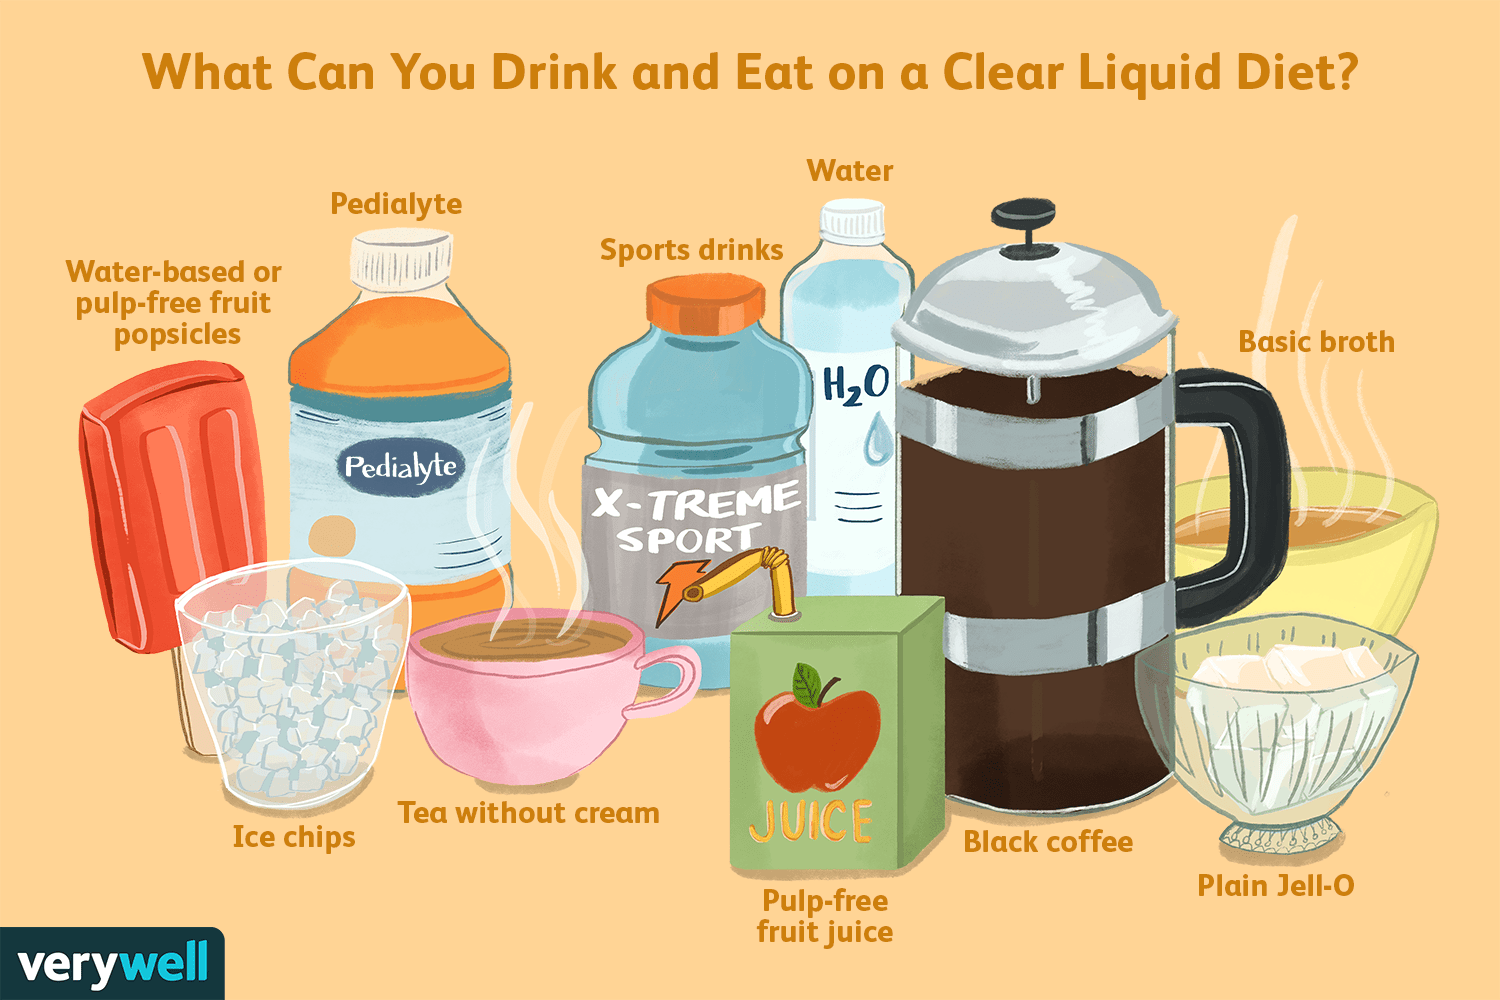 a person on clear liquid diet can have